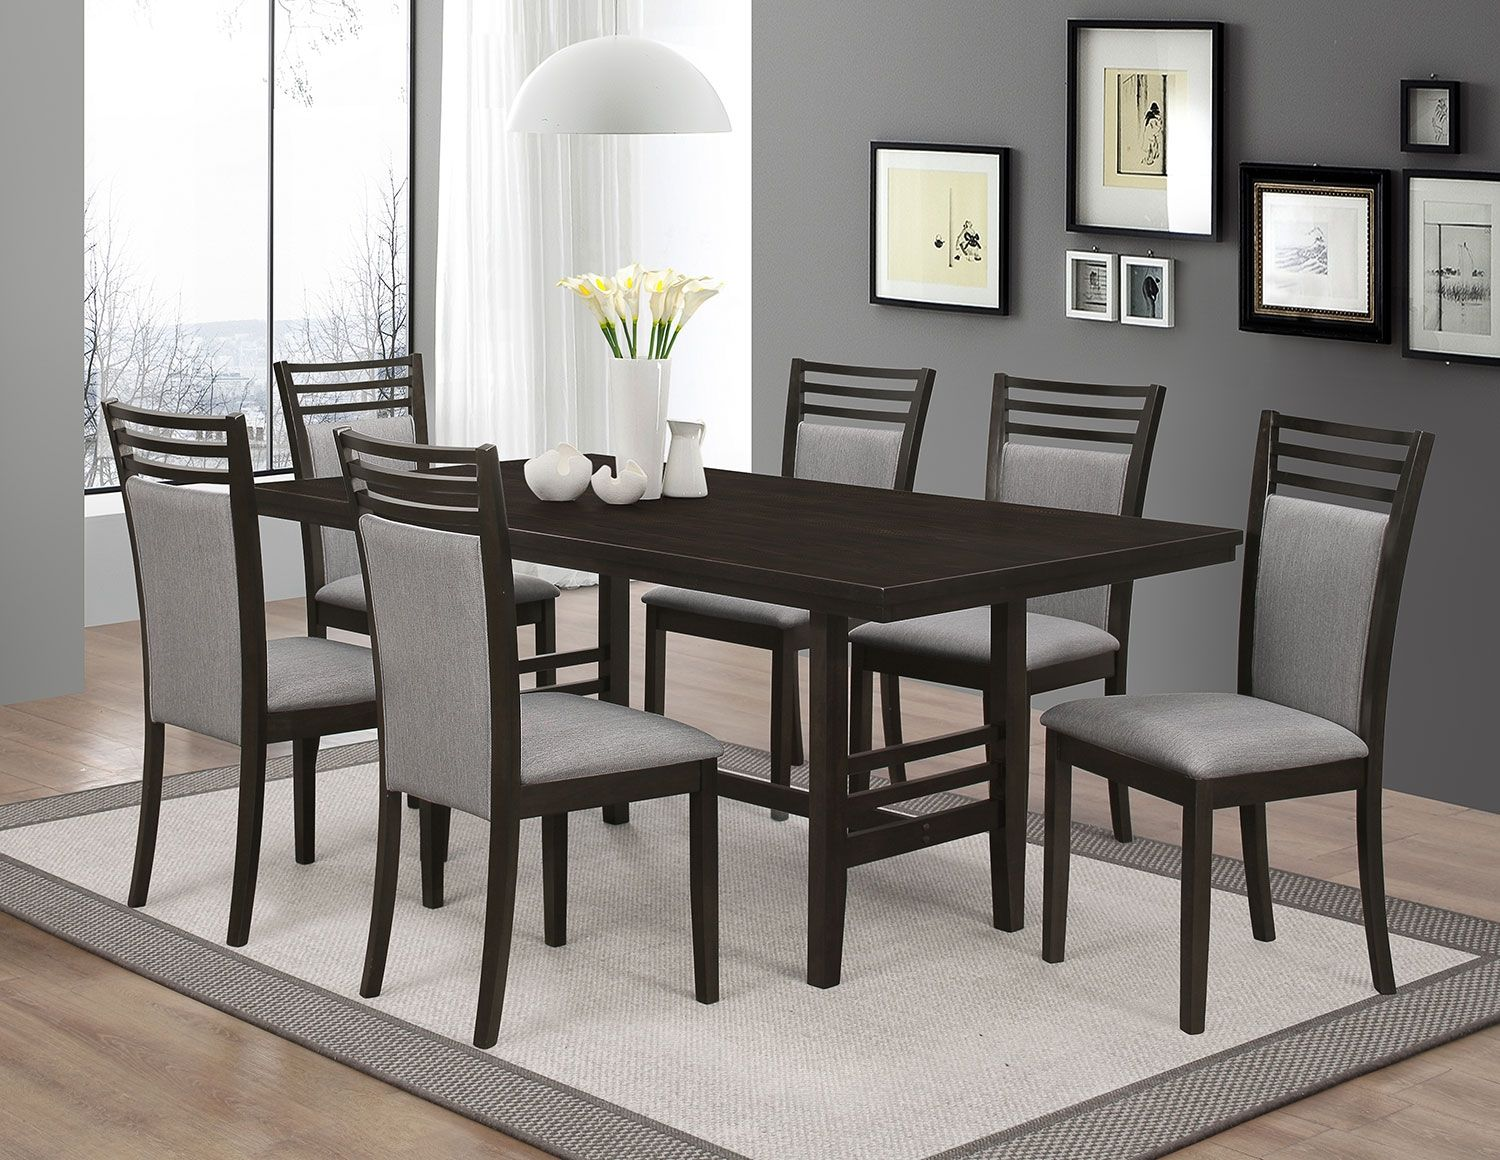 Metro 7Piece Dining Package  The Brick  Renos  Pinterest Cool Cheap Dining Room Sets Under 100 Inspiration